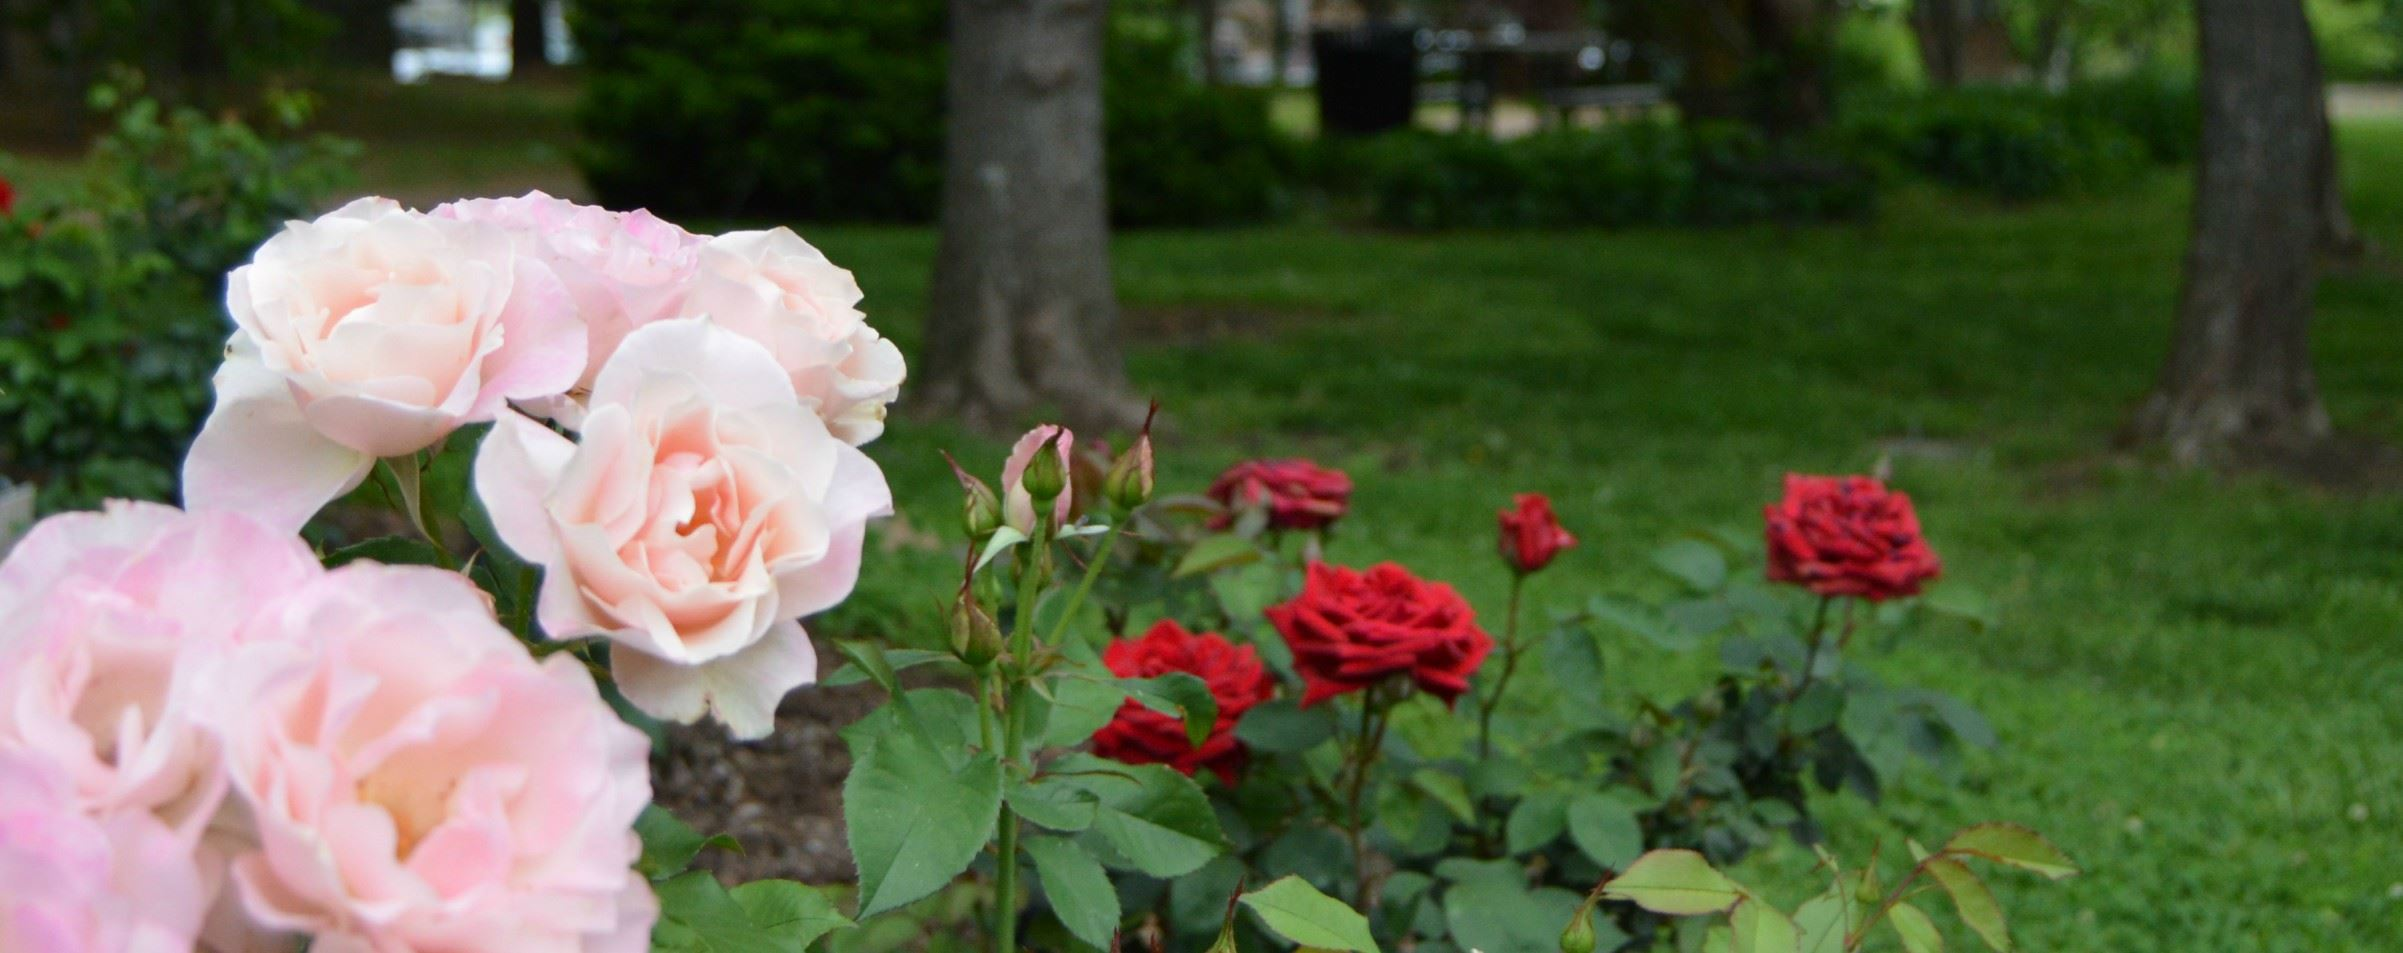 Dogwood Park Rose Bushes